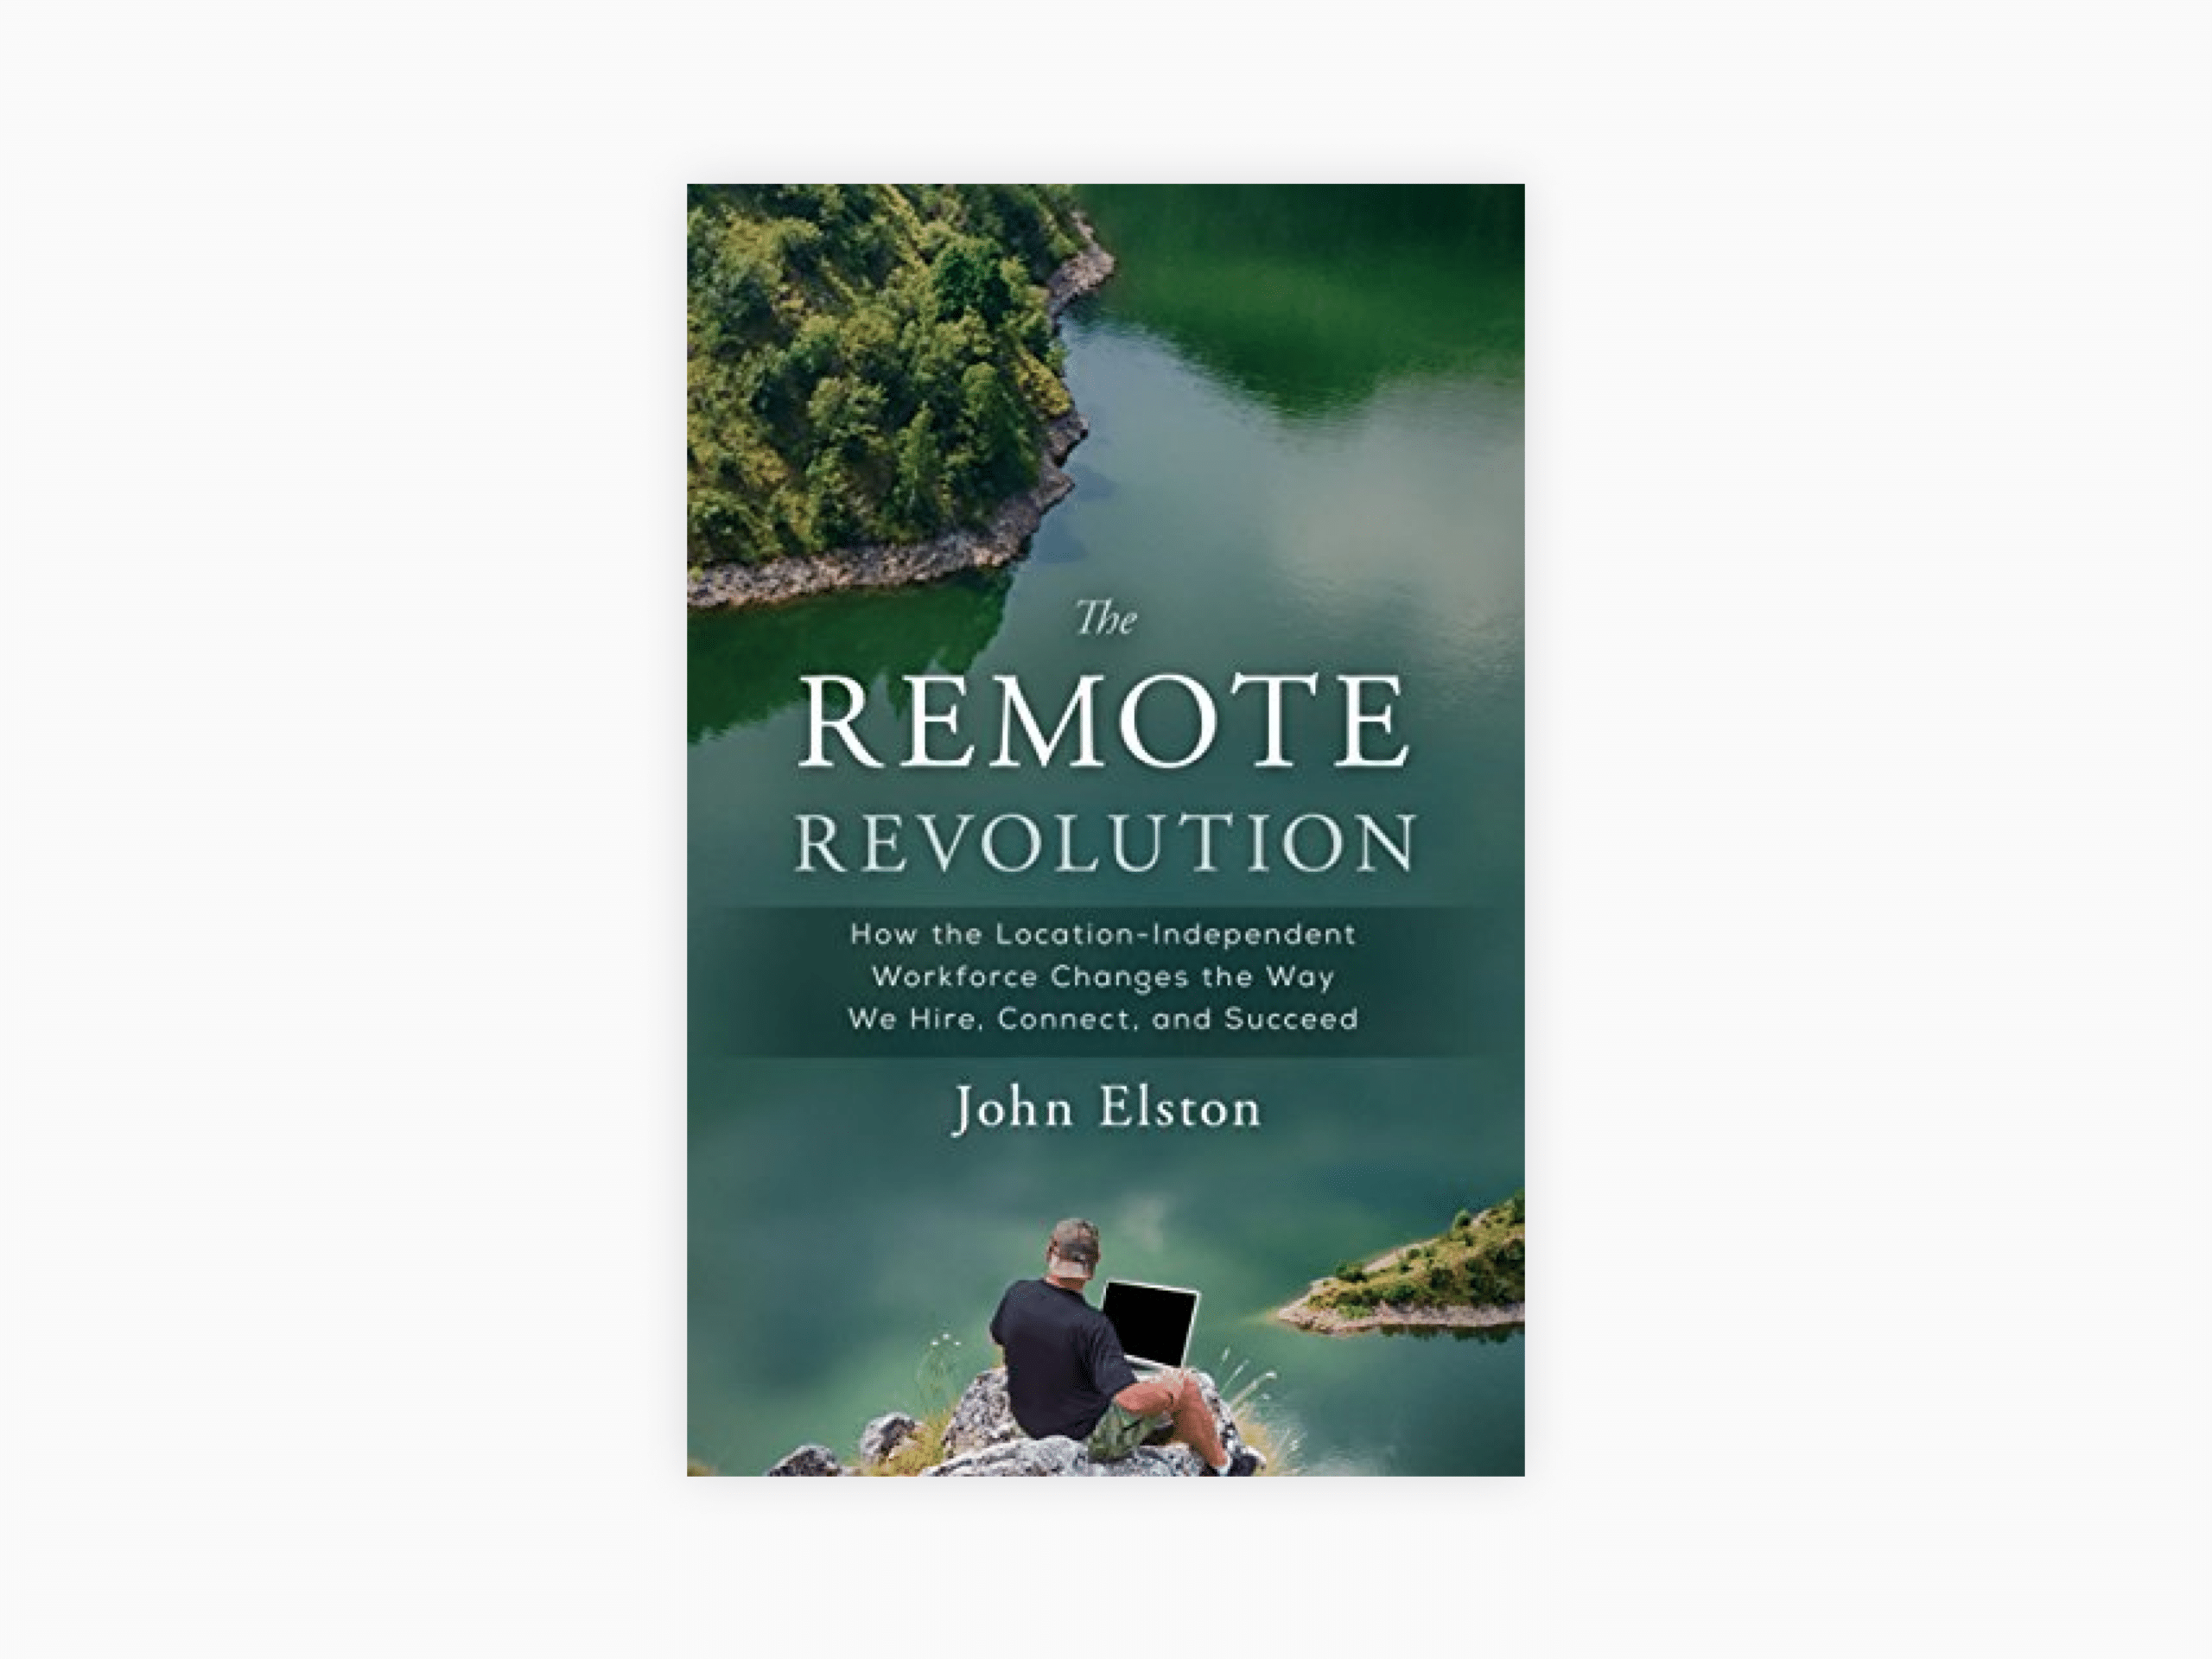 Book cover of the remote revolution: how the location-independent workforce changes the way we hire, connect, and succeed by john elston